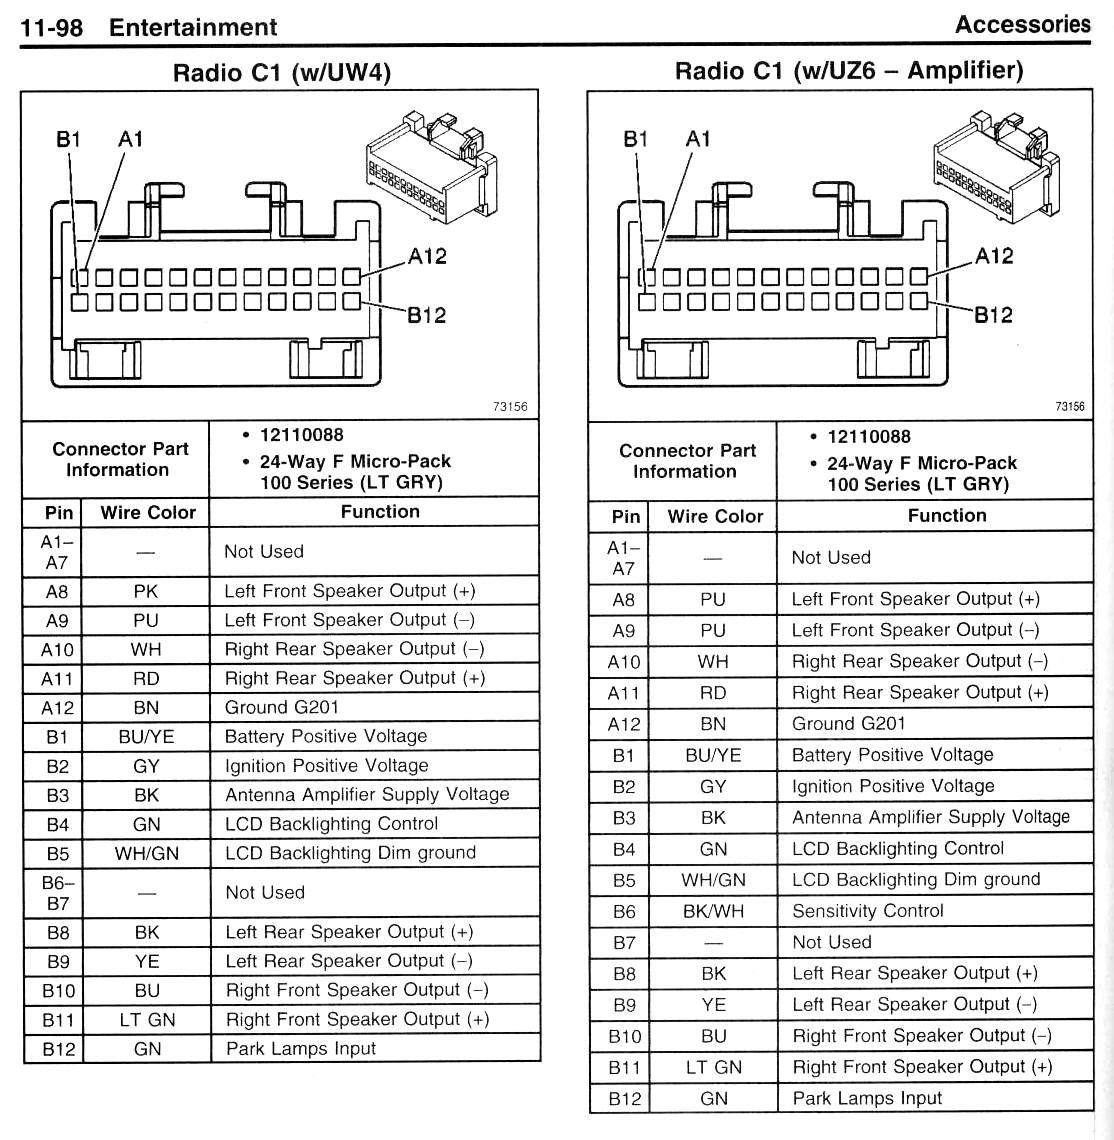 wiring diagram for 2006 pontiac vibe wiring diagram and schematic in 2006 pontiac grand prix parts diagram wiring diagram for 2006 pontiac vibe wiring diagram and 2006 pontiac grand prix radio wiring diagram at fashall.co